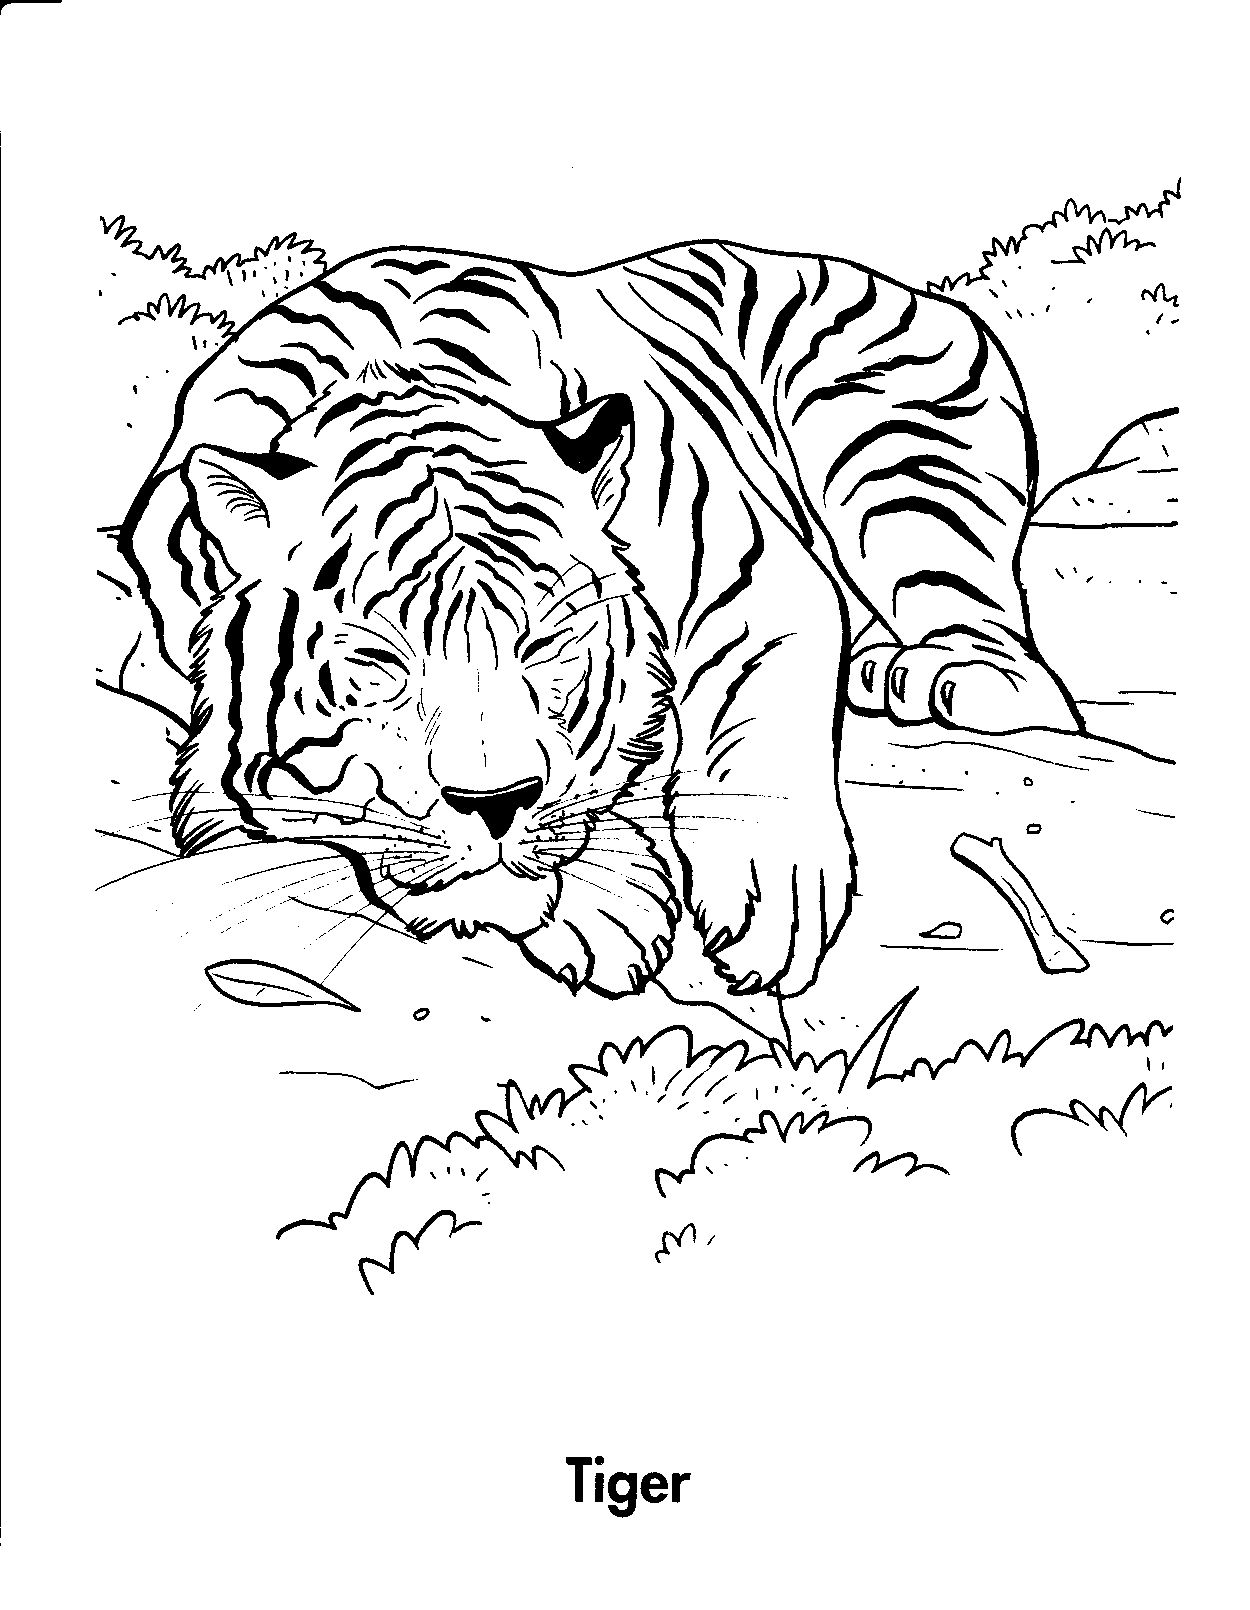 jungle Tiger Coloring Pages for kids | Animal coloring ...